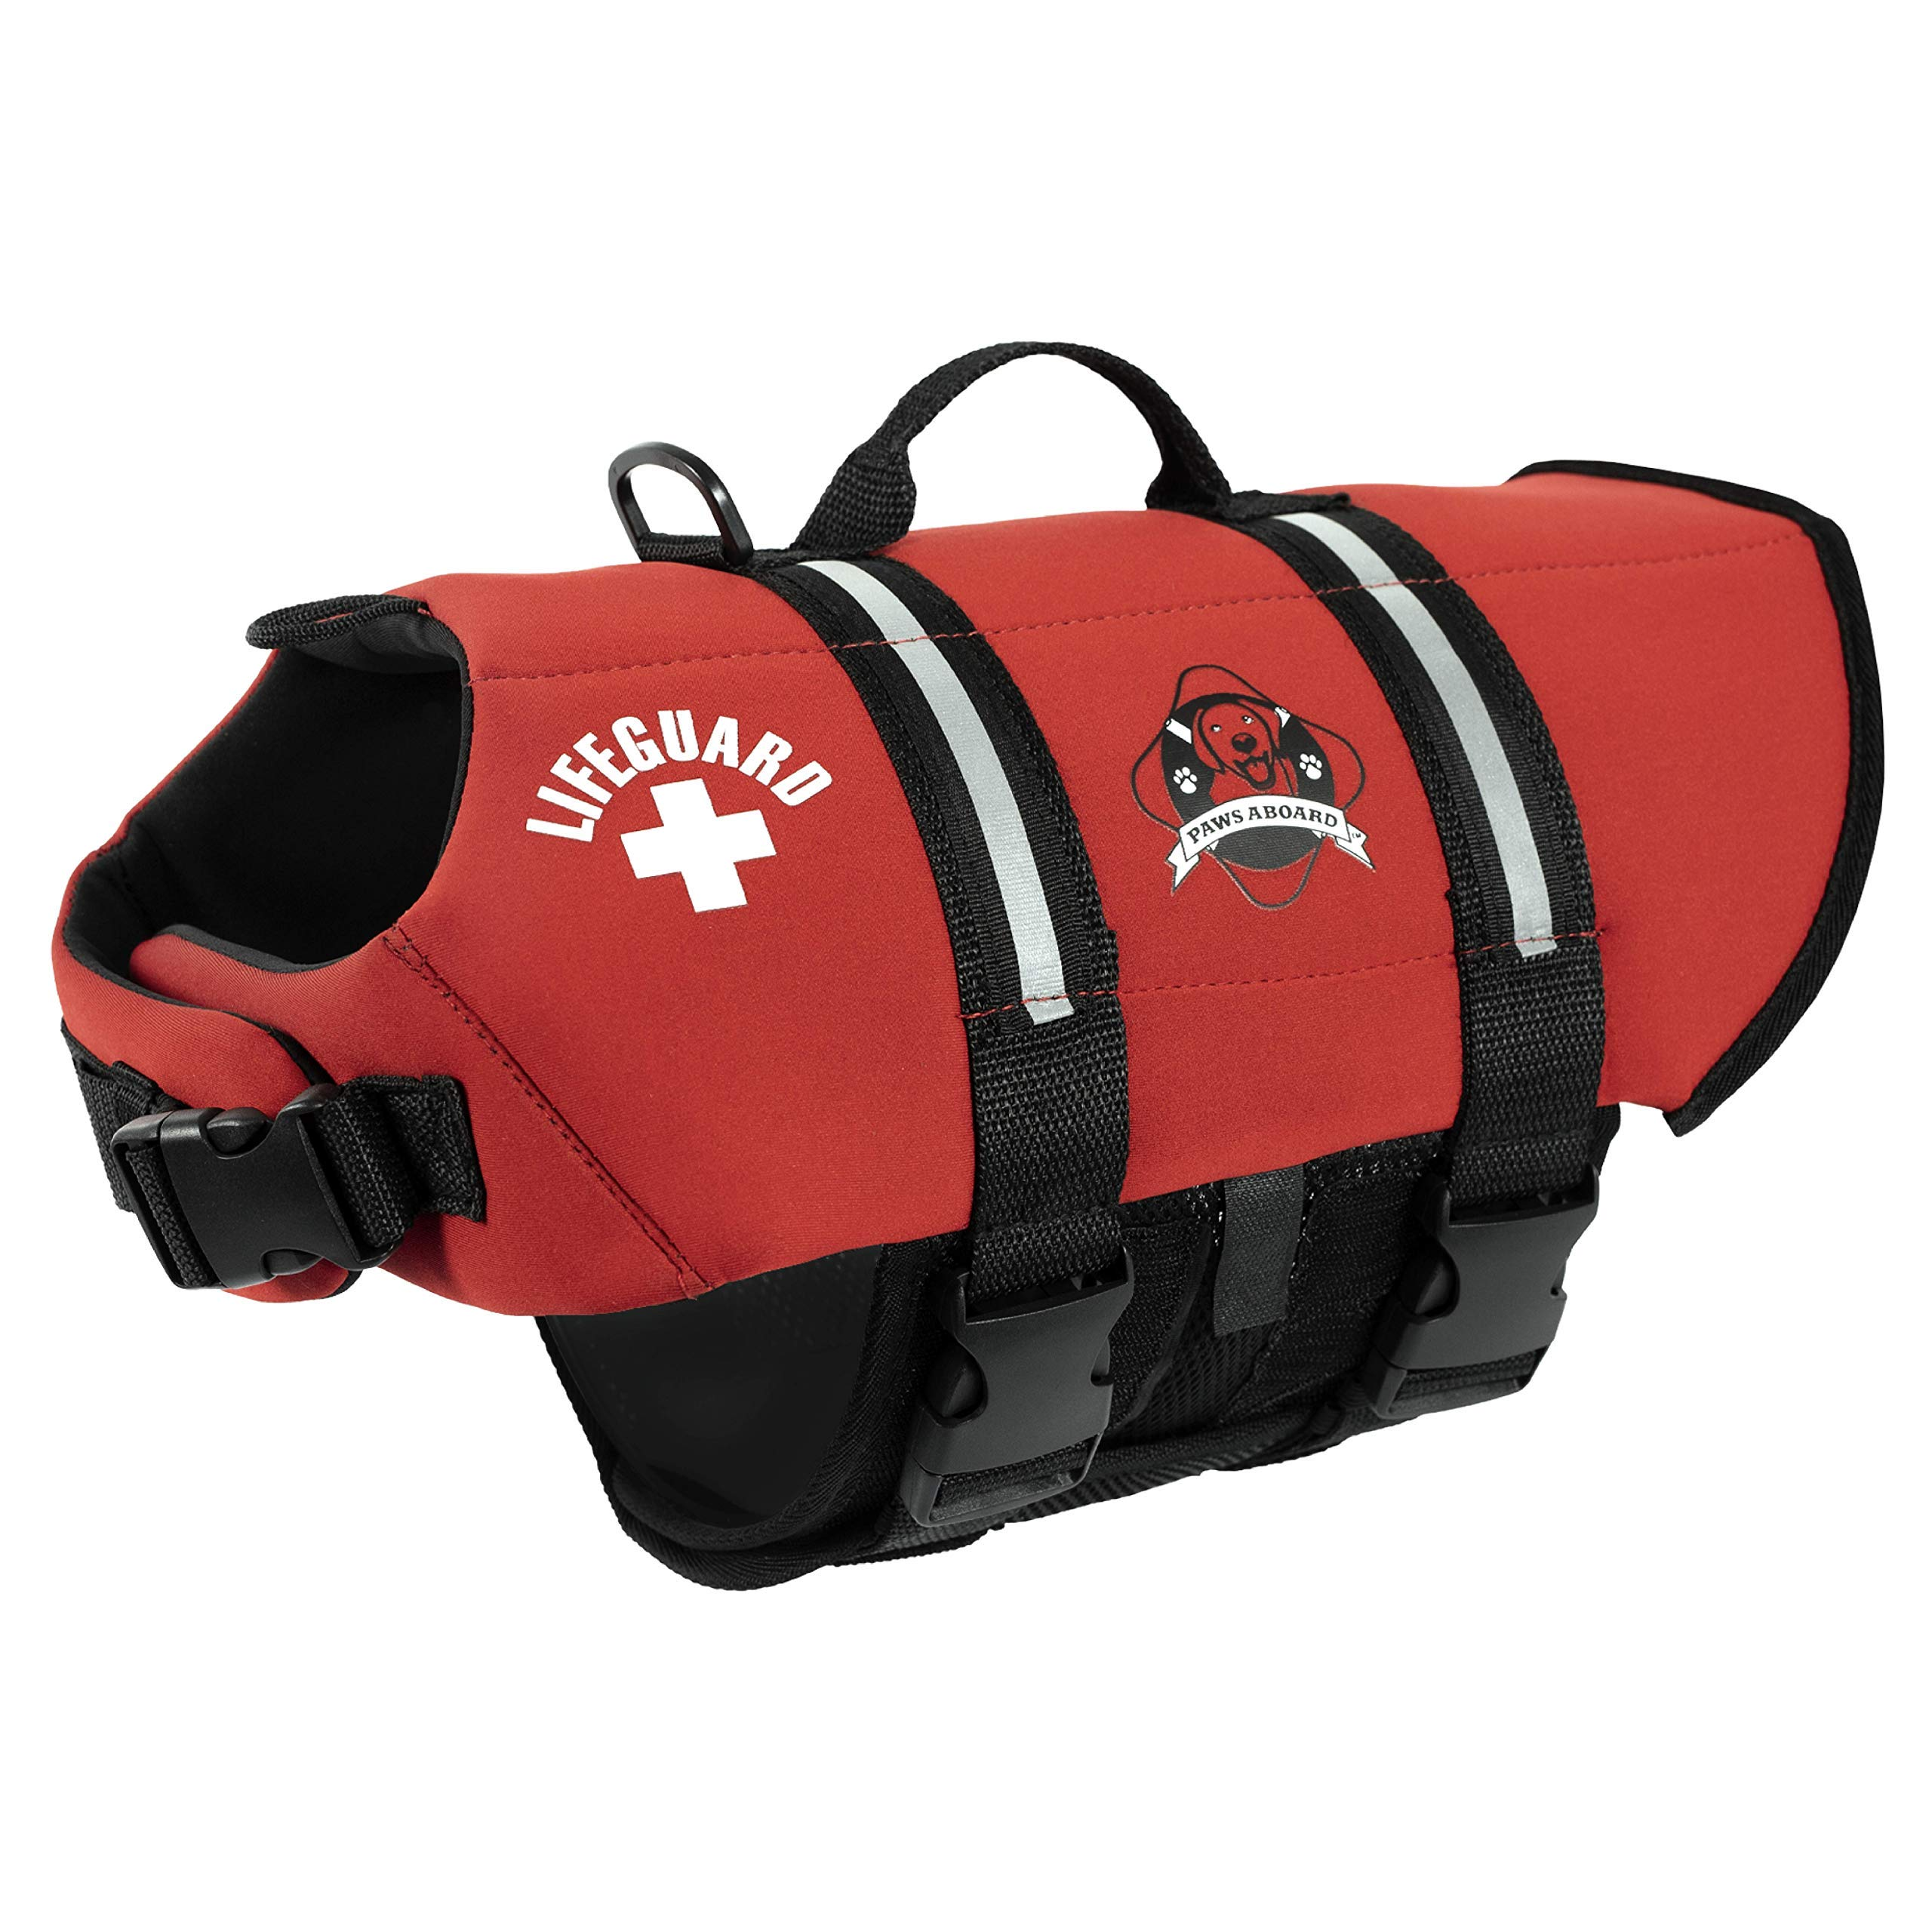 Paws Aboard Double Neoprene Designer Doggy Life Jacket in Red - Extra-Small